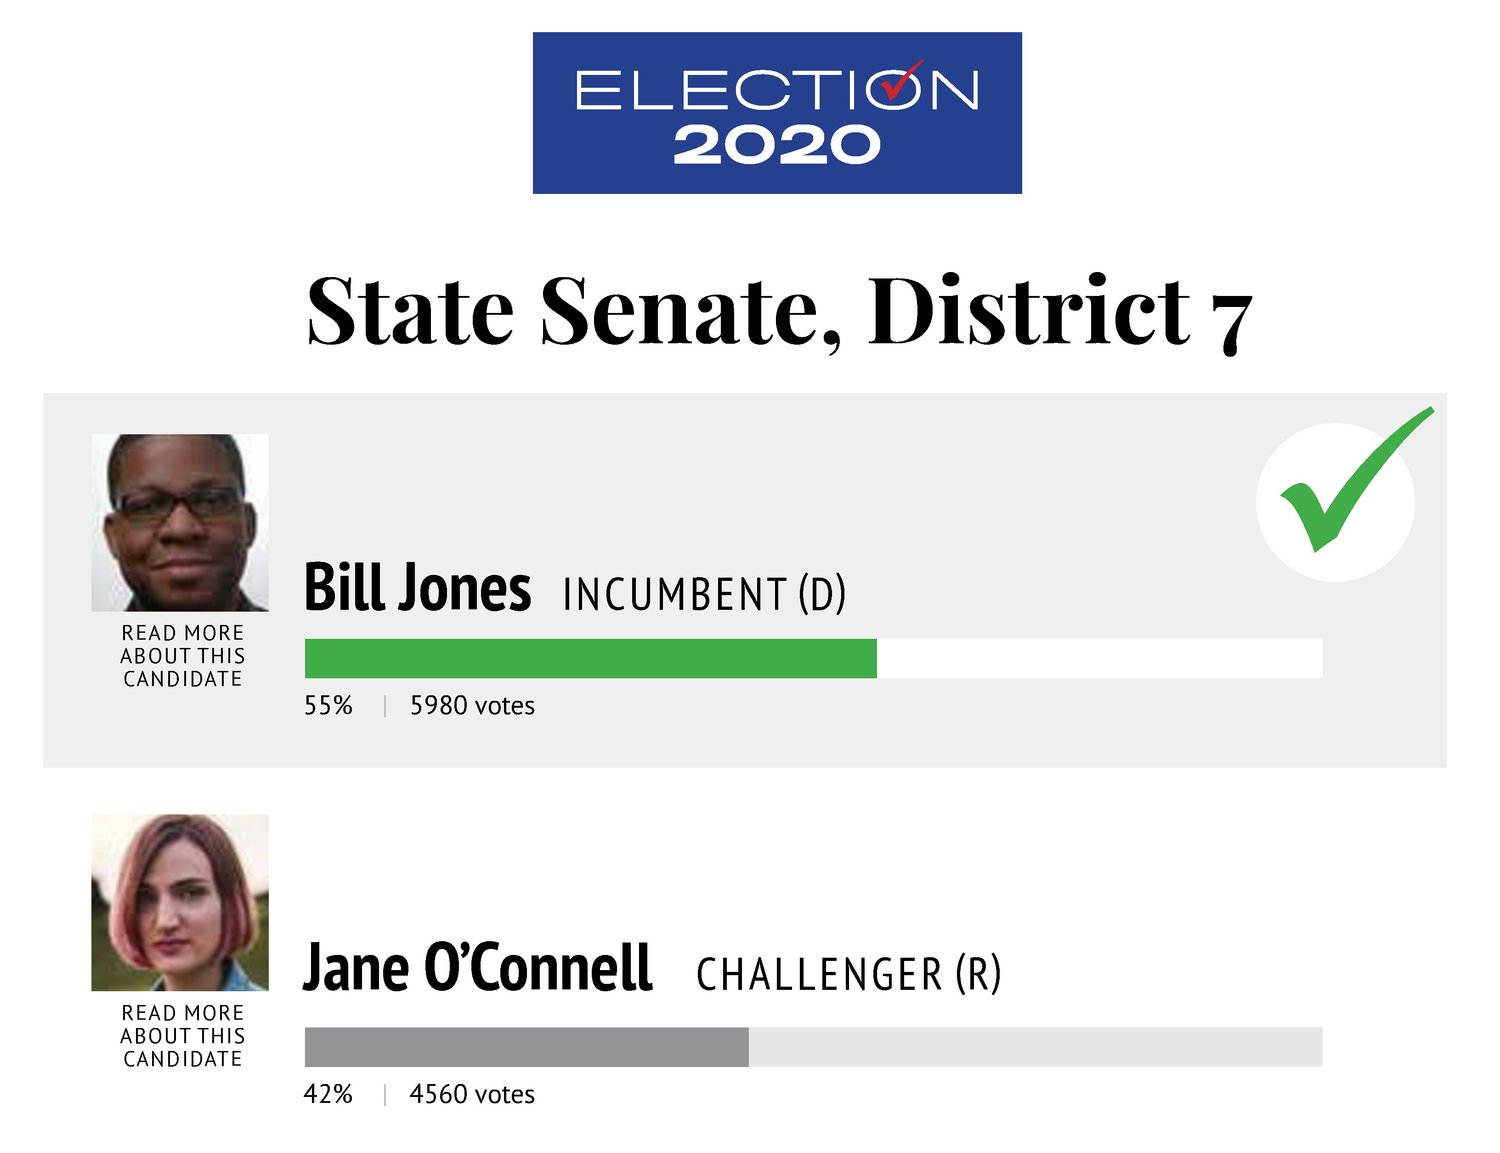 One of several results widgets to display election results.